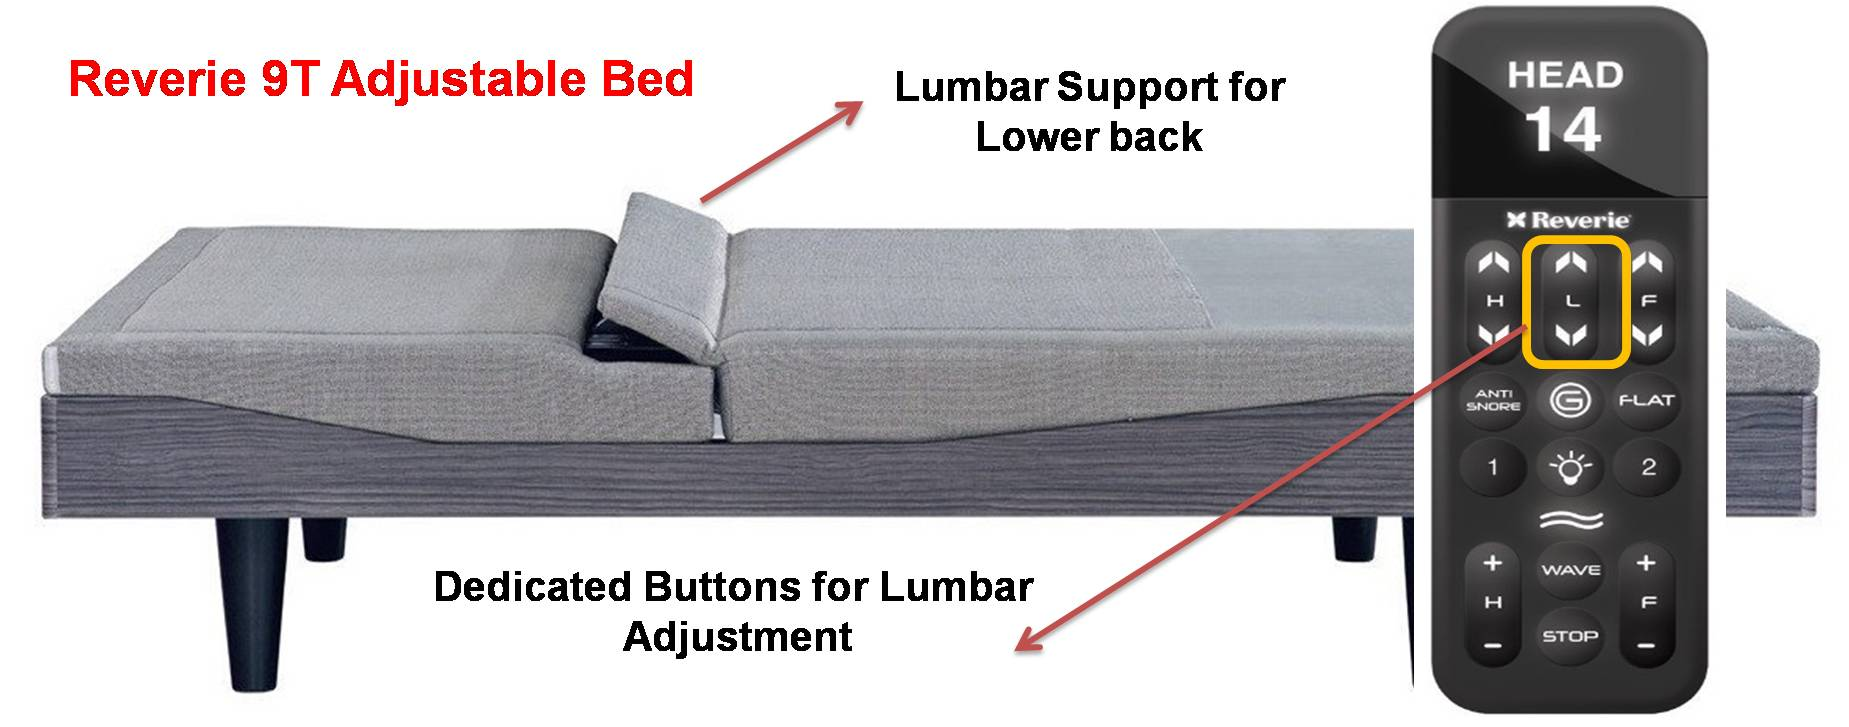 Reverie 9T Adjustable Bed with Lumbar Support for Lower Back